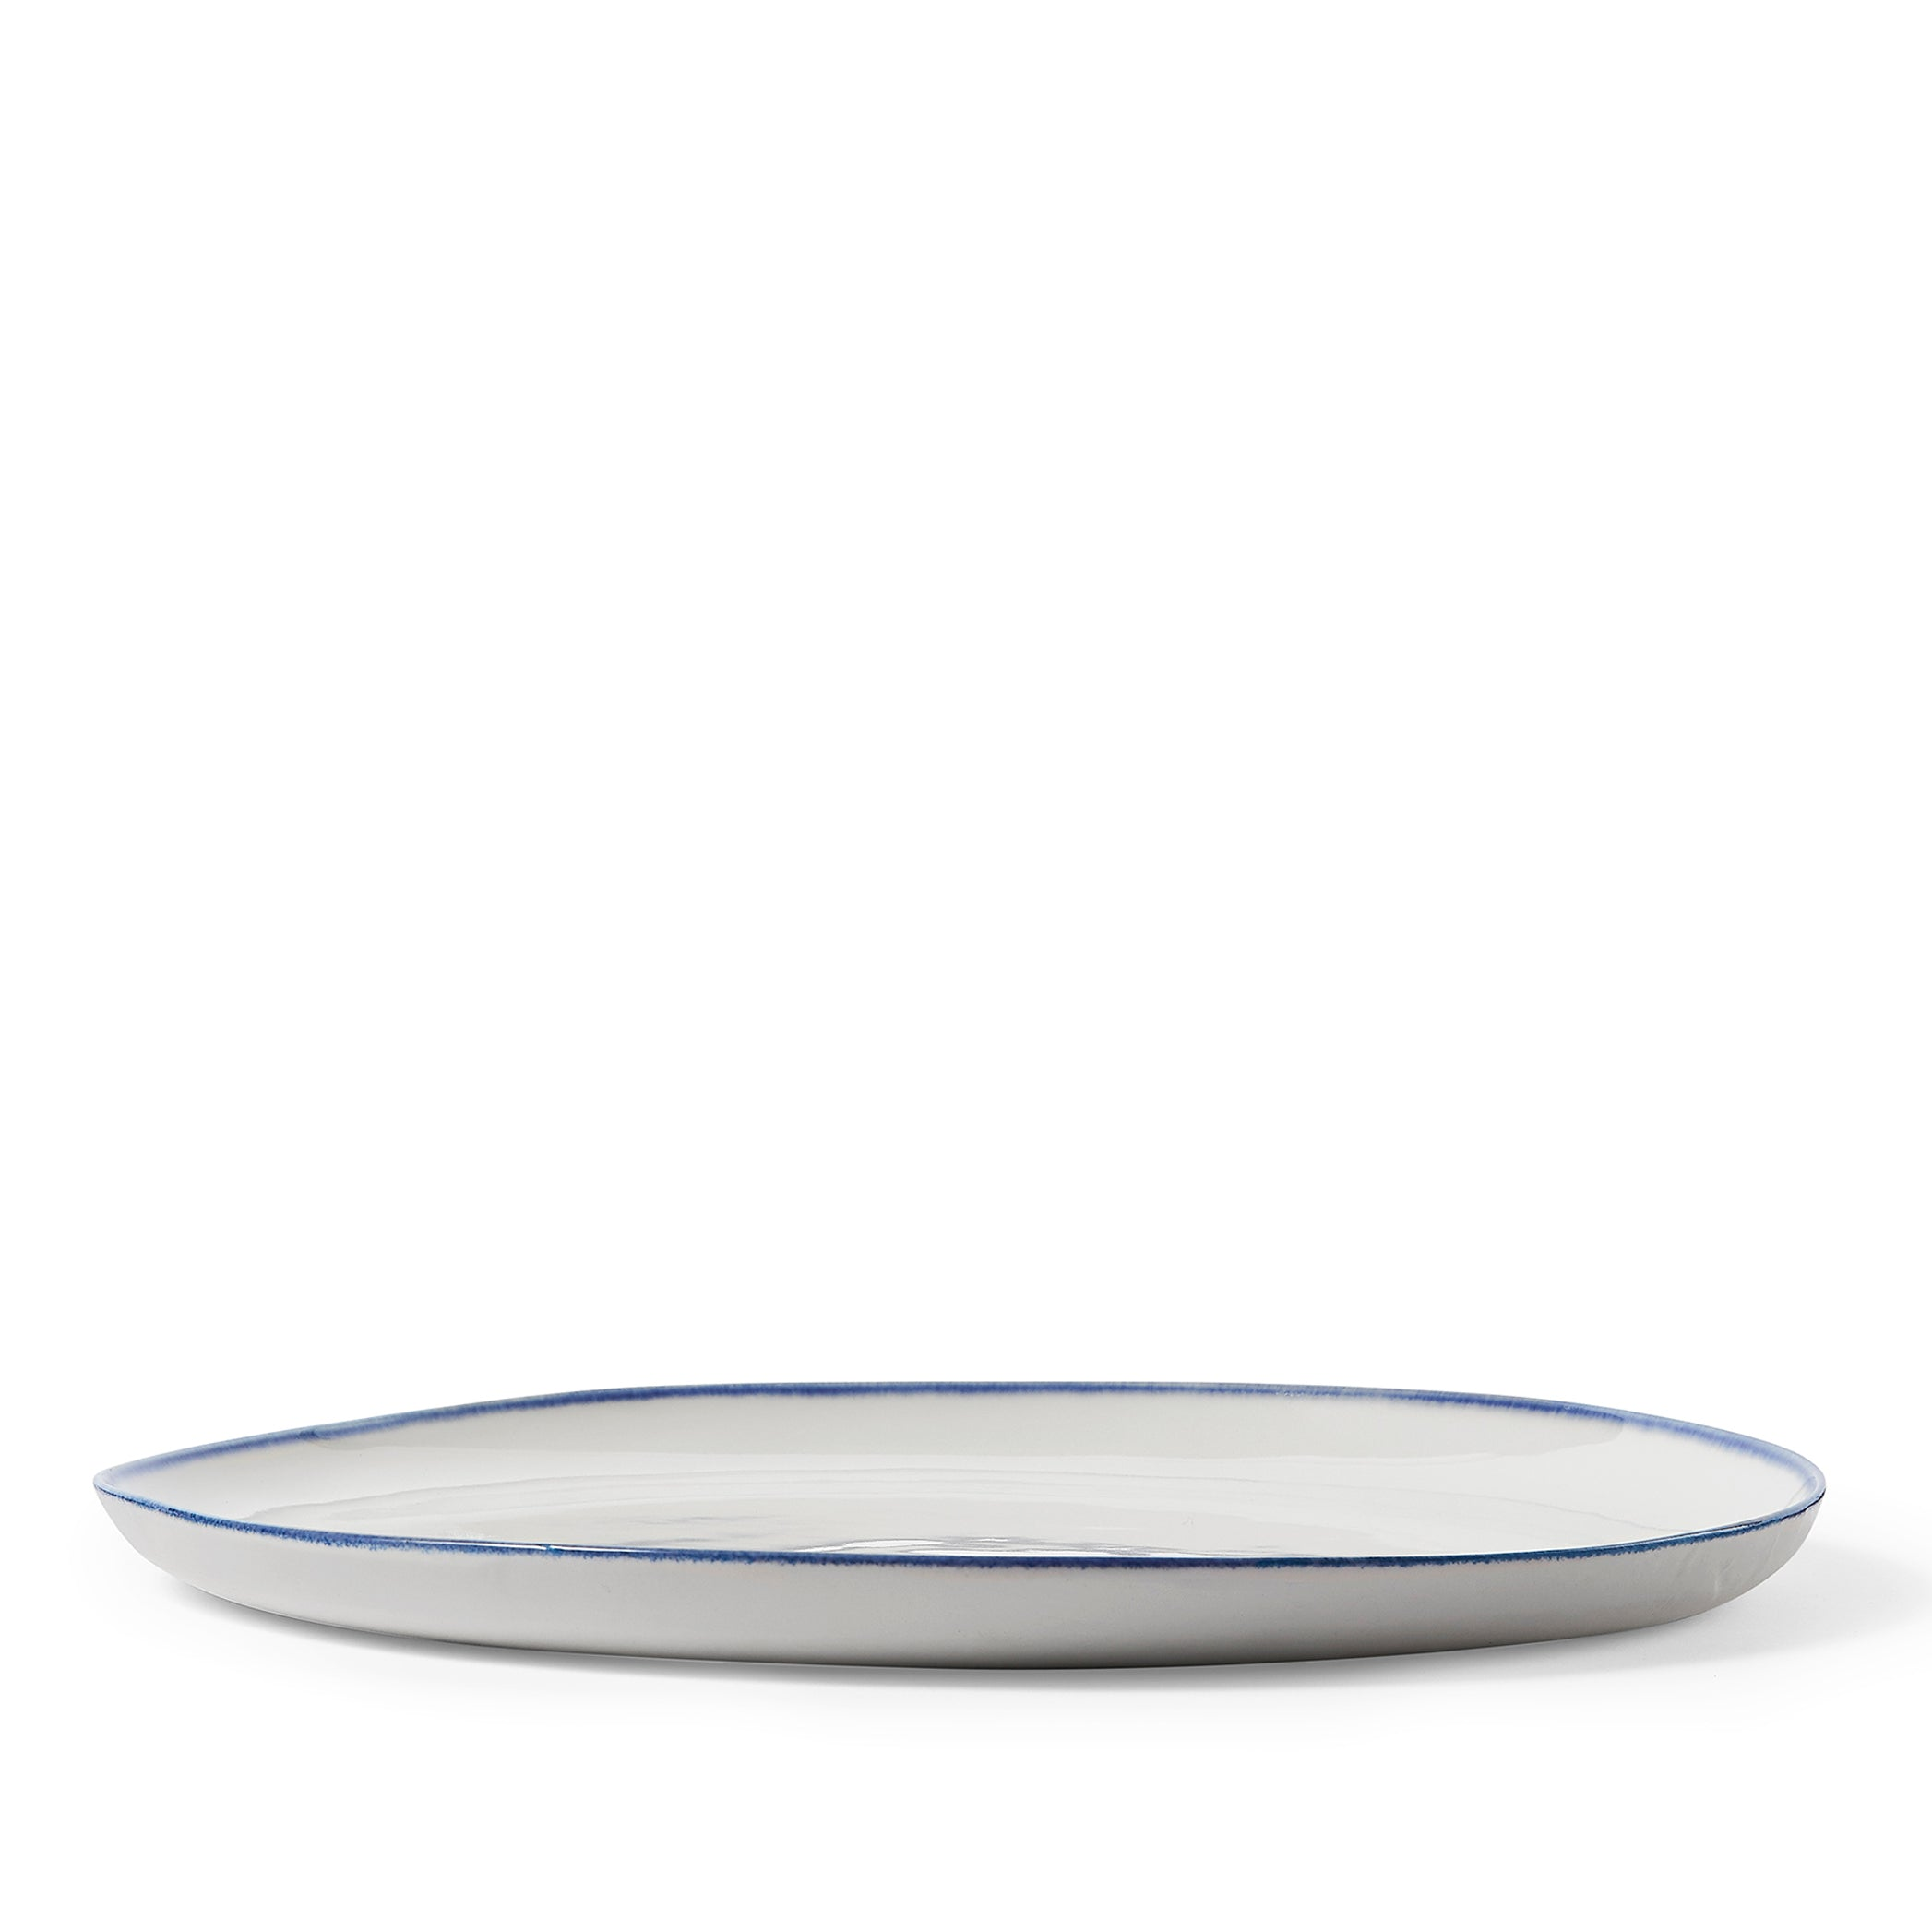 Made to order - S&B Handmade 31cm Porcelain Dinner Plate with Midnight Blue Rim